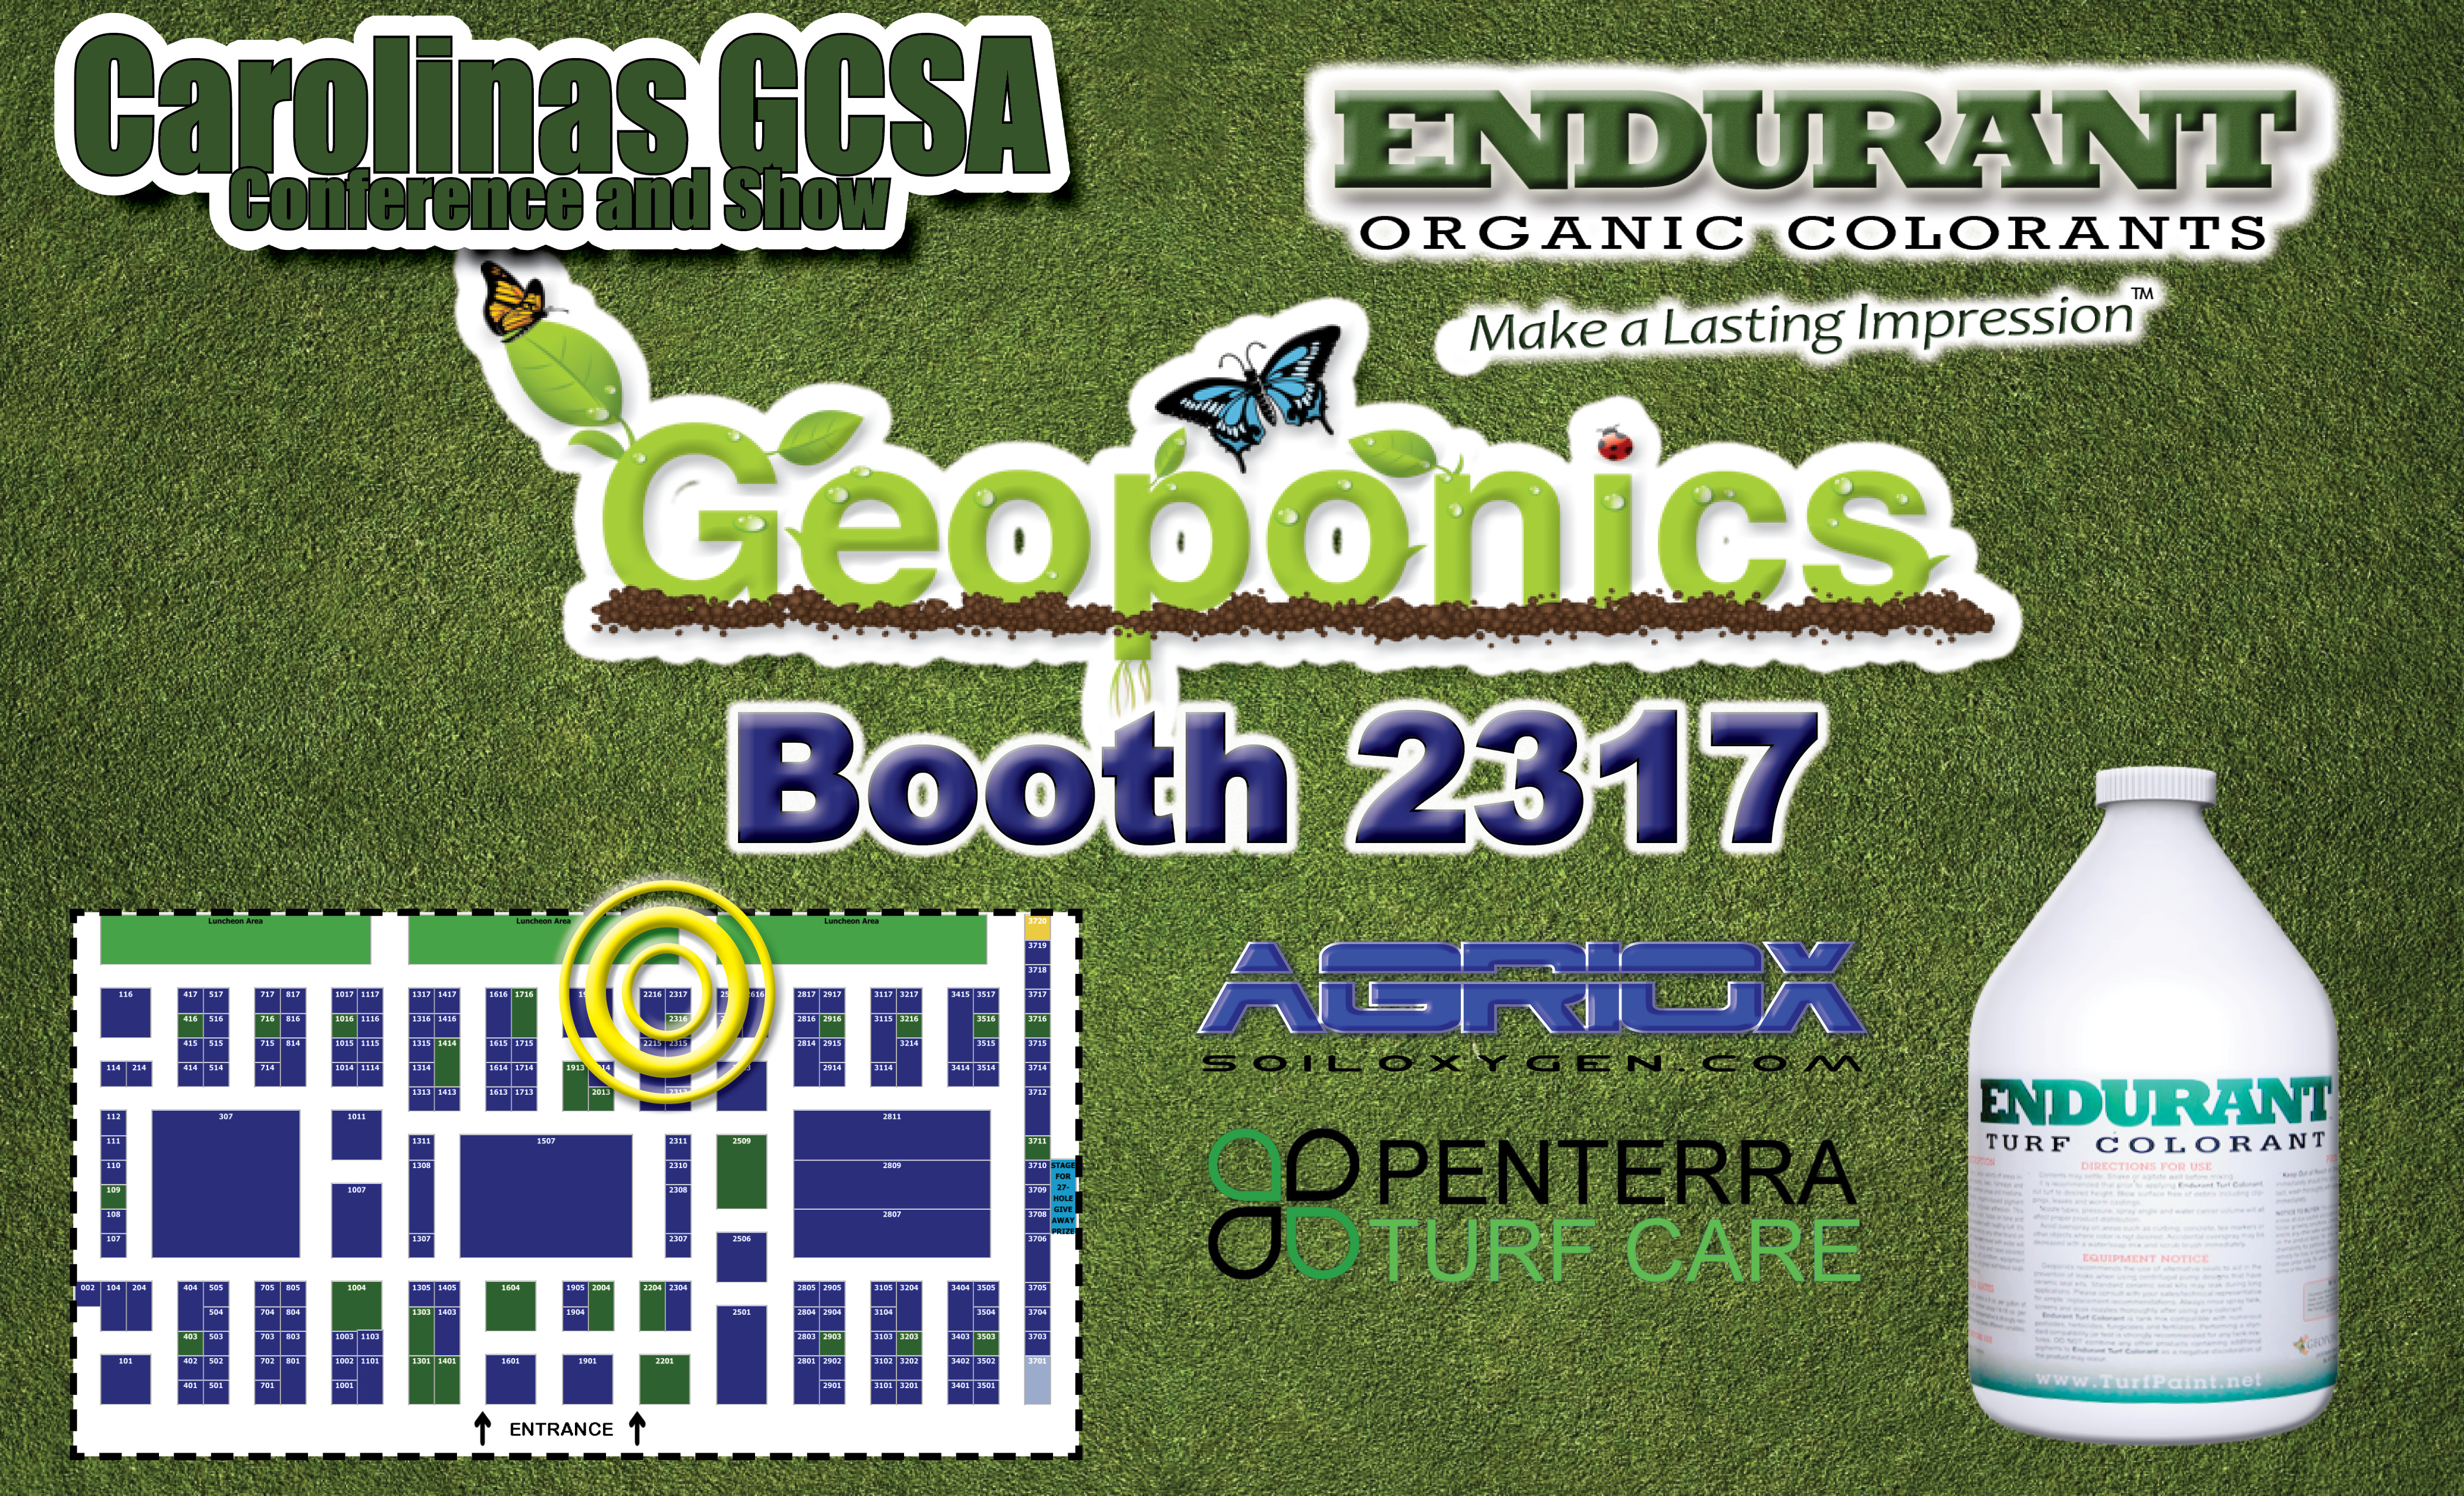 Geoponics at Carolina GCSA Conference & Show 2014